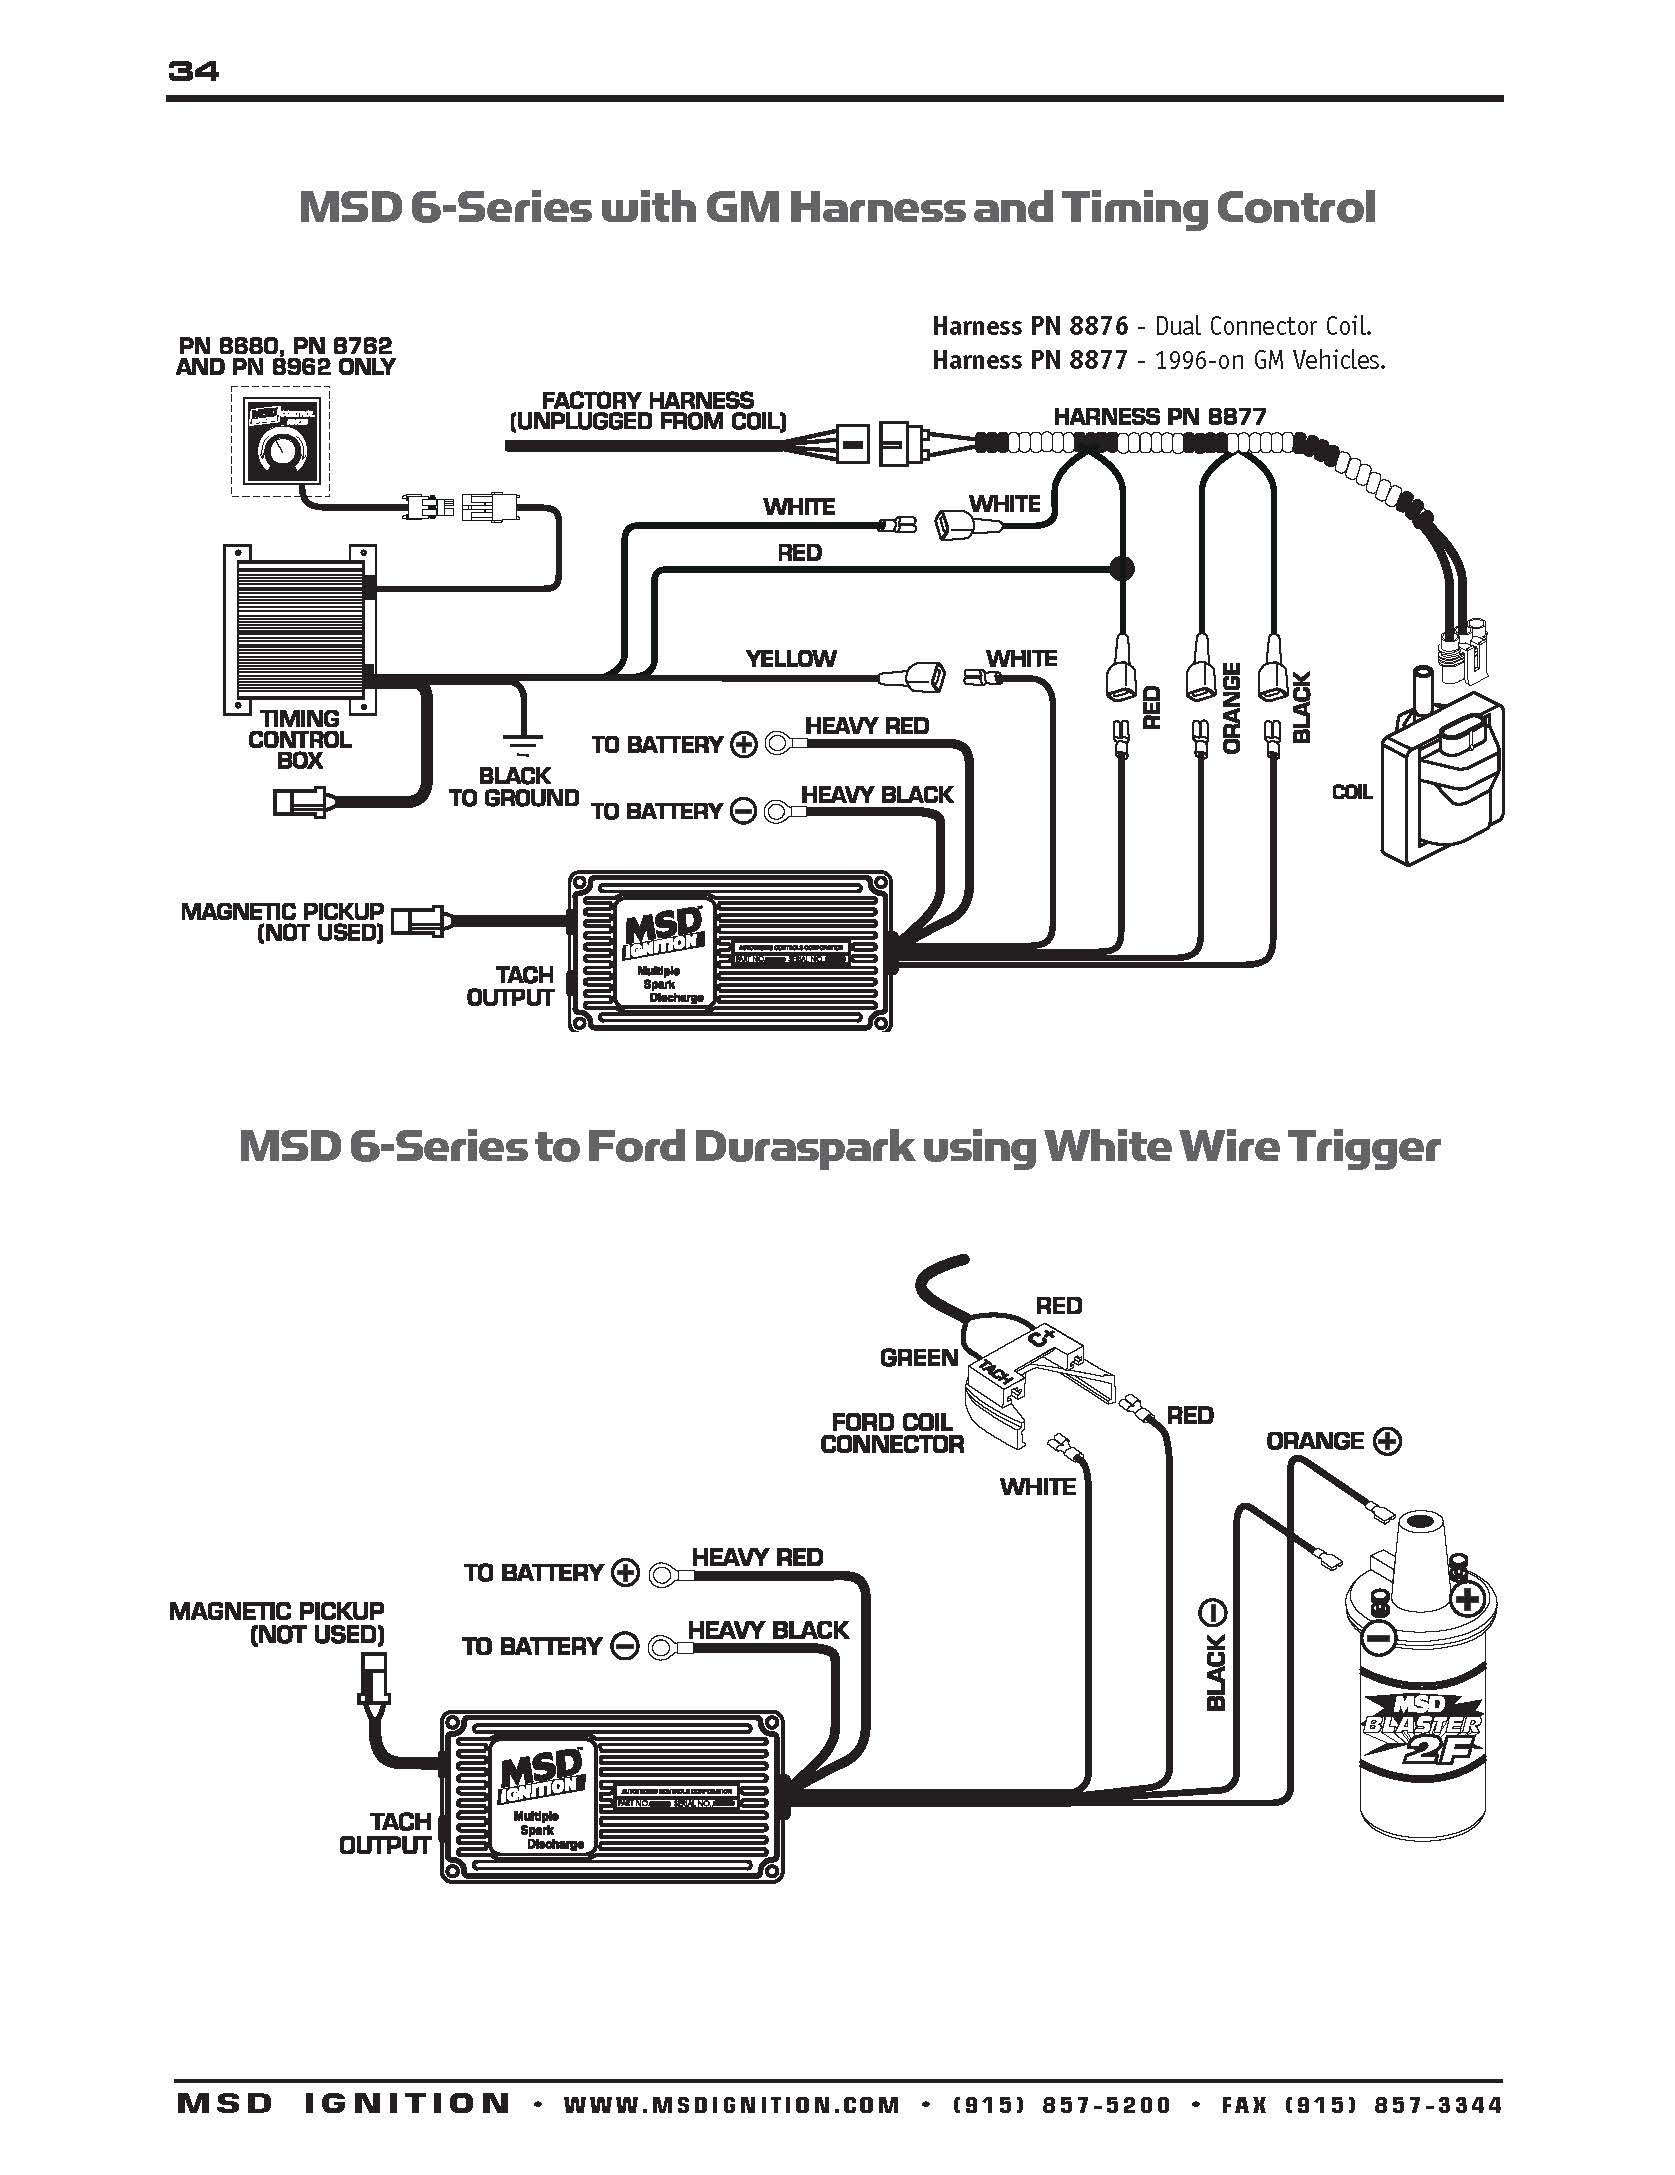 Ford 3000 Distributor Wiring Diagram Trusted Diagrams Harness For Best Image 2018 1700